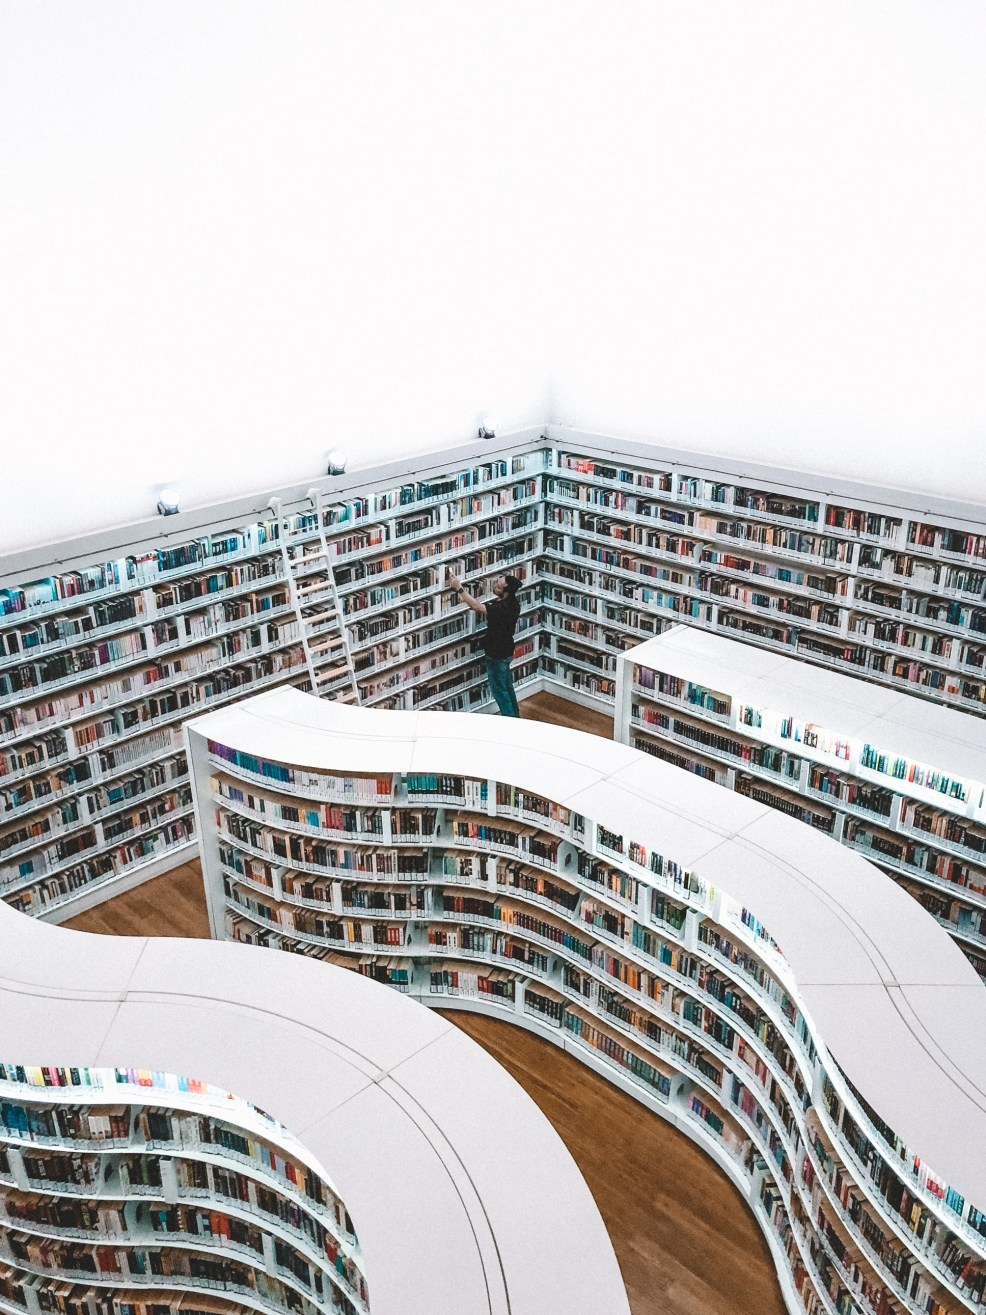 Library Orchard, Singapore, Instagrammable places in Singapore